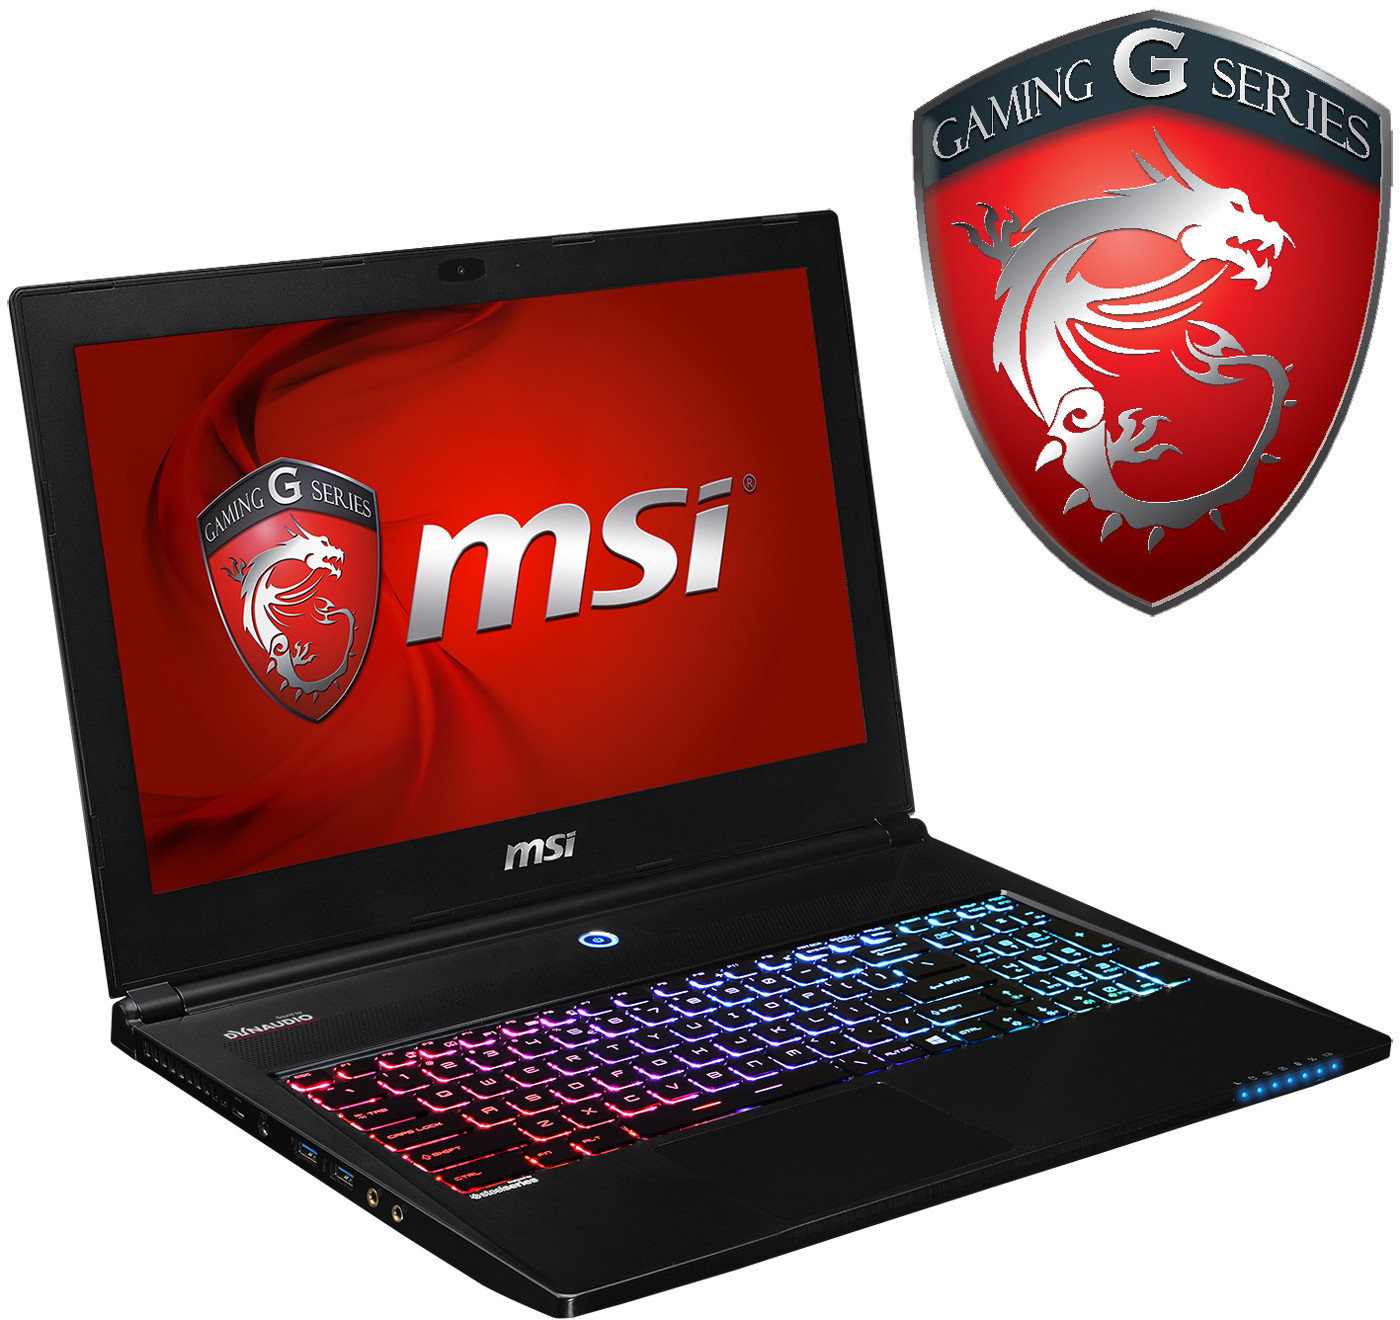 msi gs60 2pci581 gaming notebook test gaming notebook. Black Bedroom Furniture Sets. Home Design Ideas